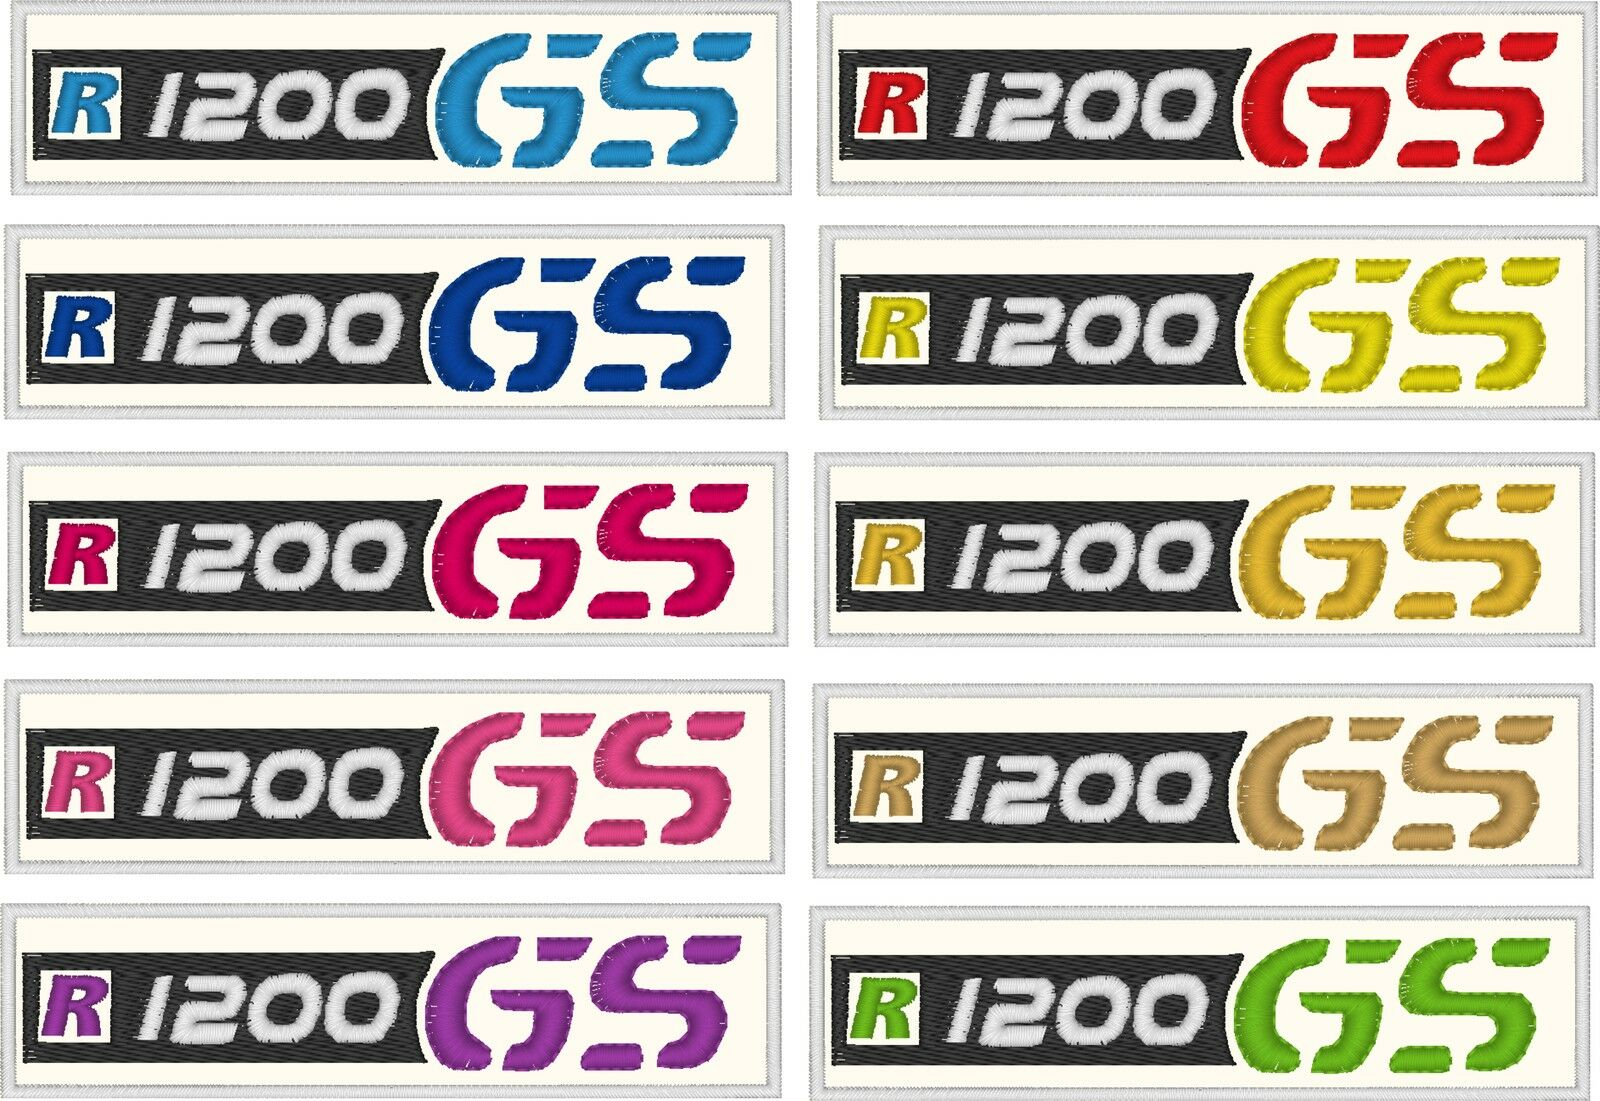 Patch BMW R1200gs R 1200 Gs R1200 Gs Embroidered Thermoadhesive cm 12x 2,5